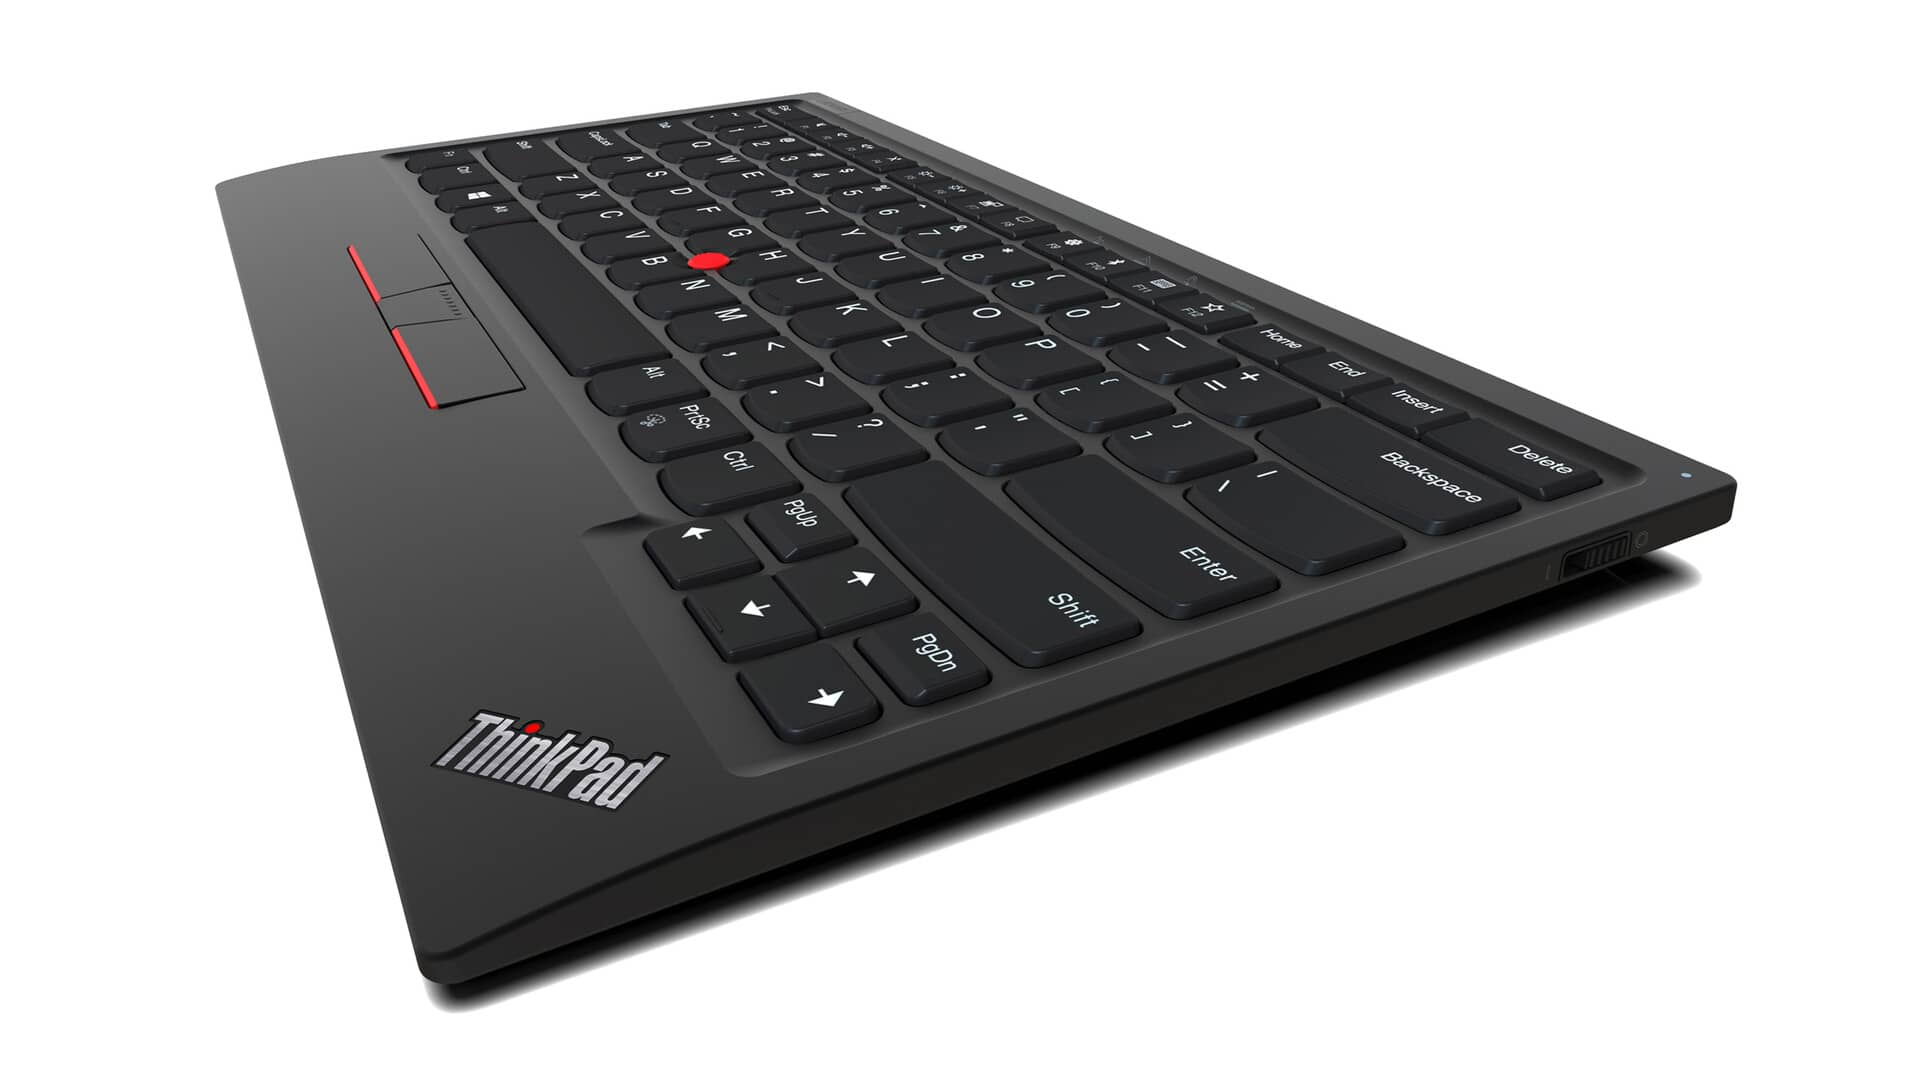 Thinkpad TrackPoint Keyboard obr2